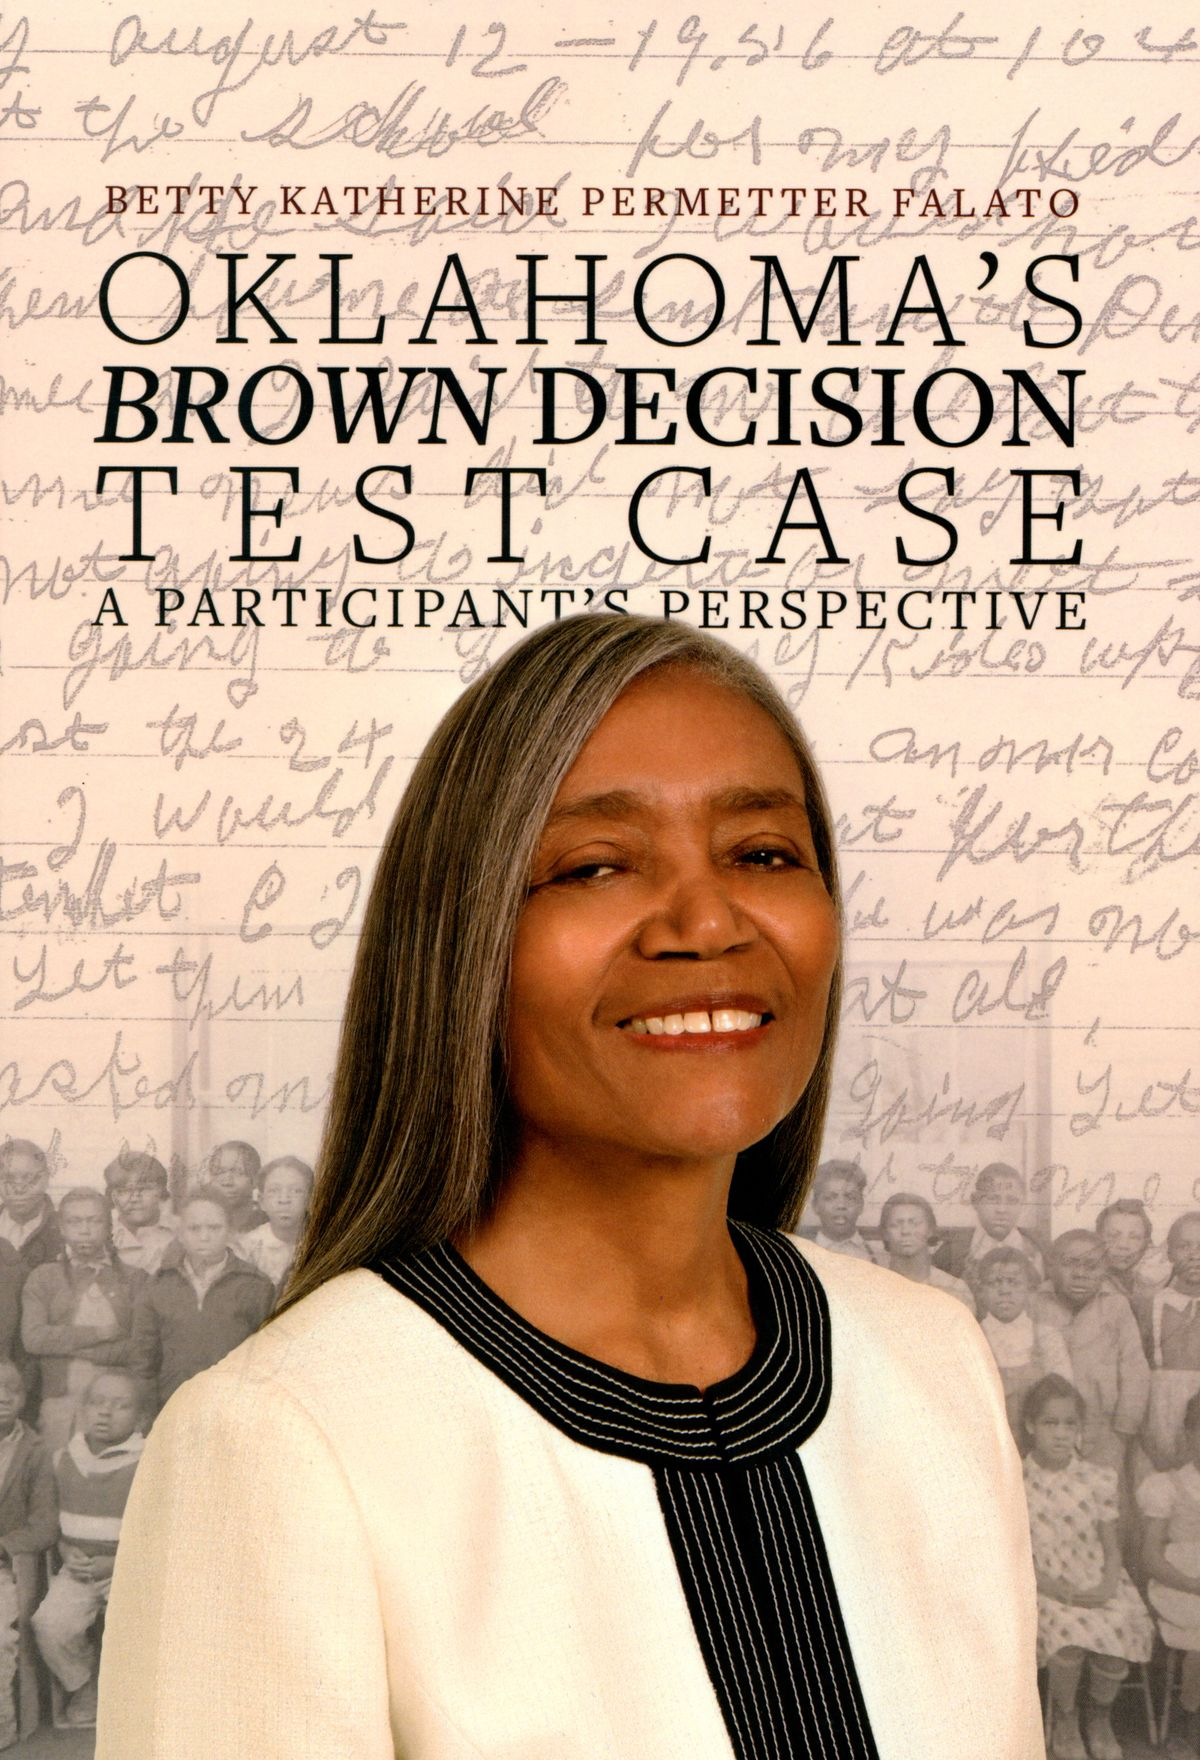 OKLAHOMA'S BROWN DECISION TEST CASE.jpg